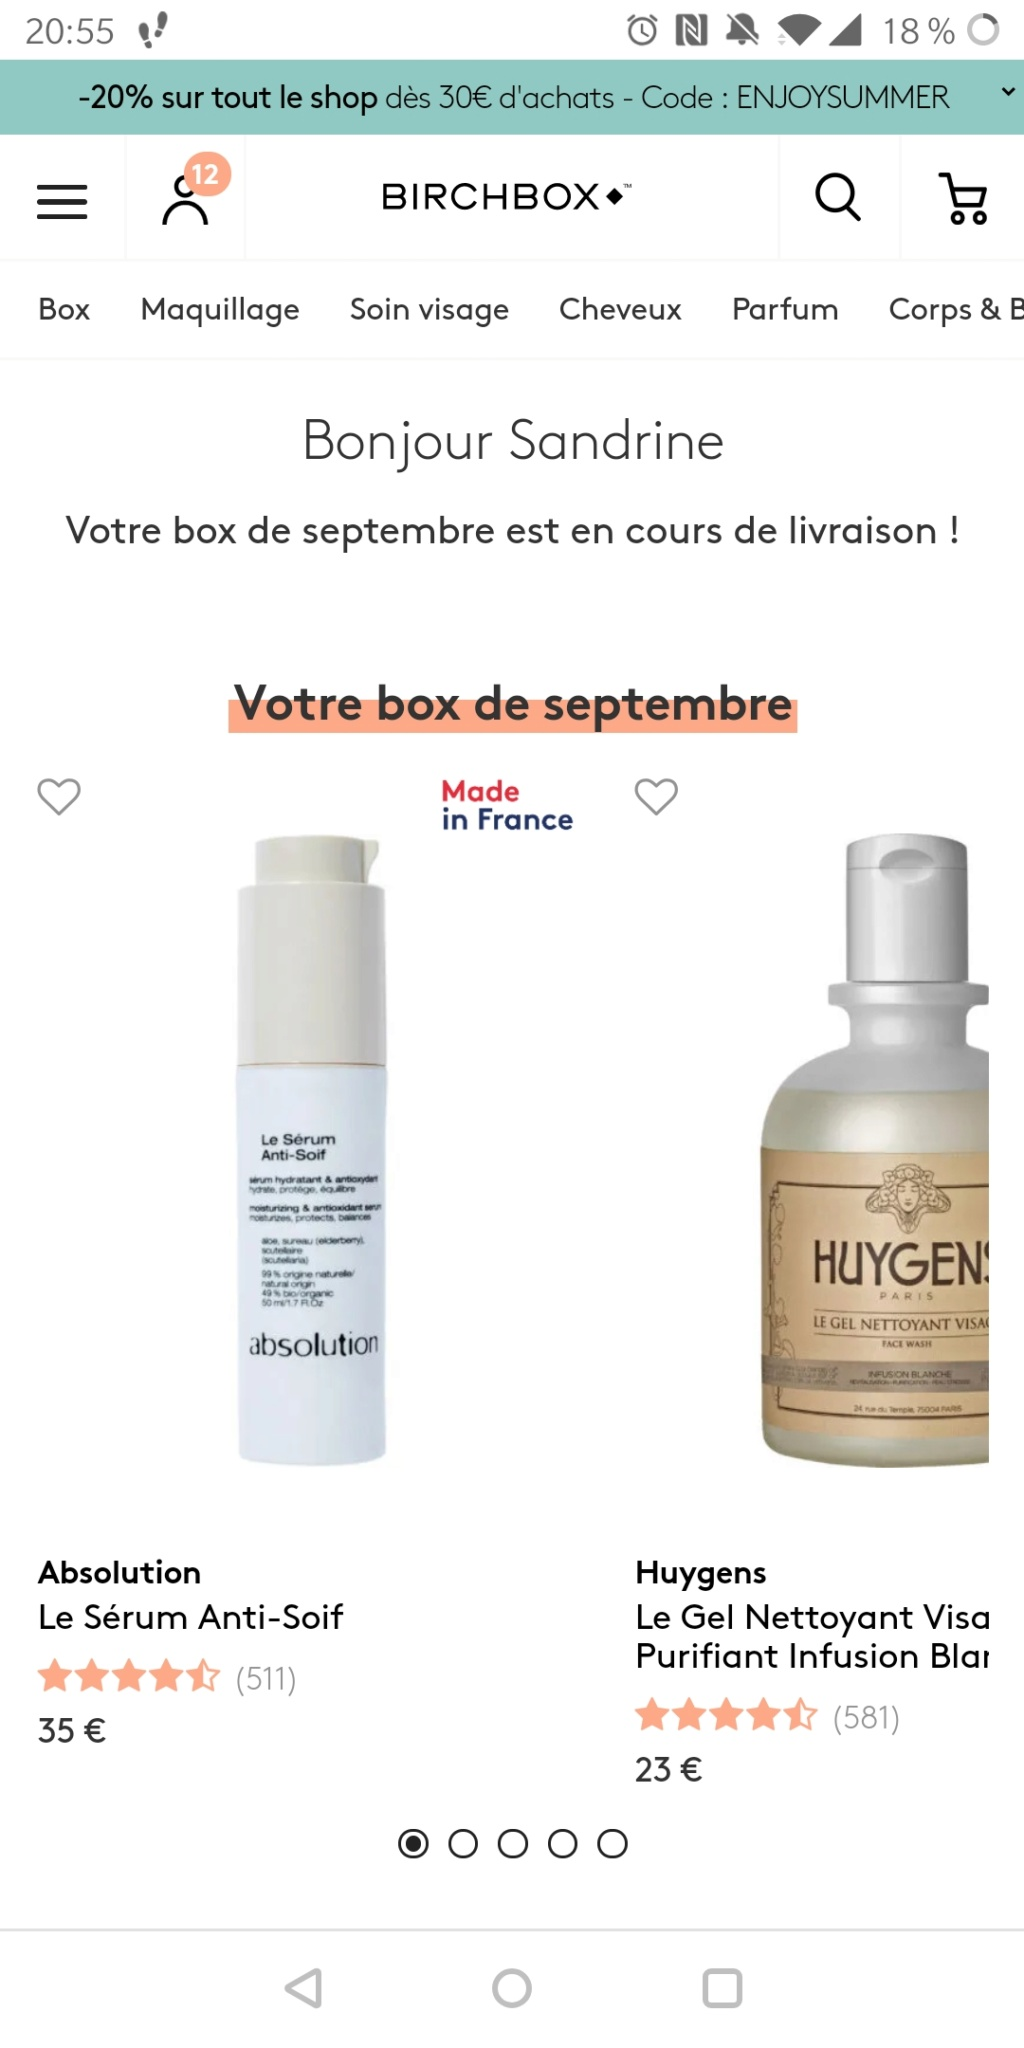 [Septembre 2019] Birchbox - Page 2 Screen19